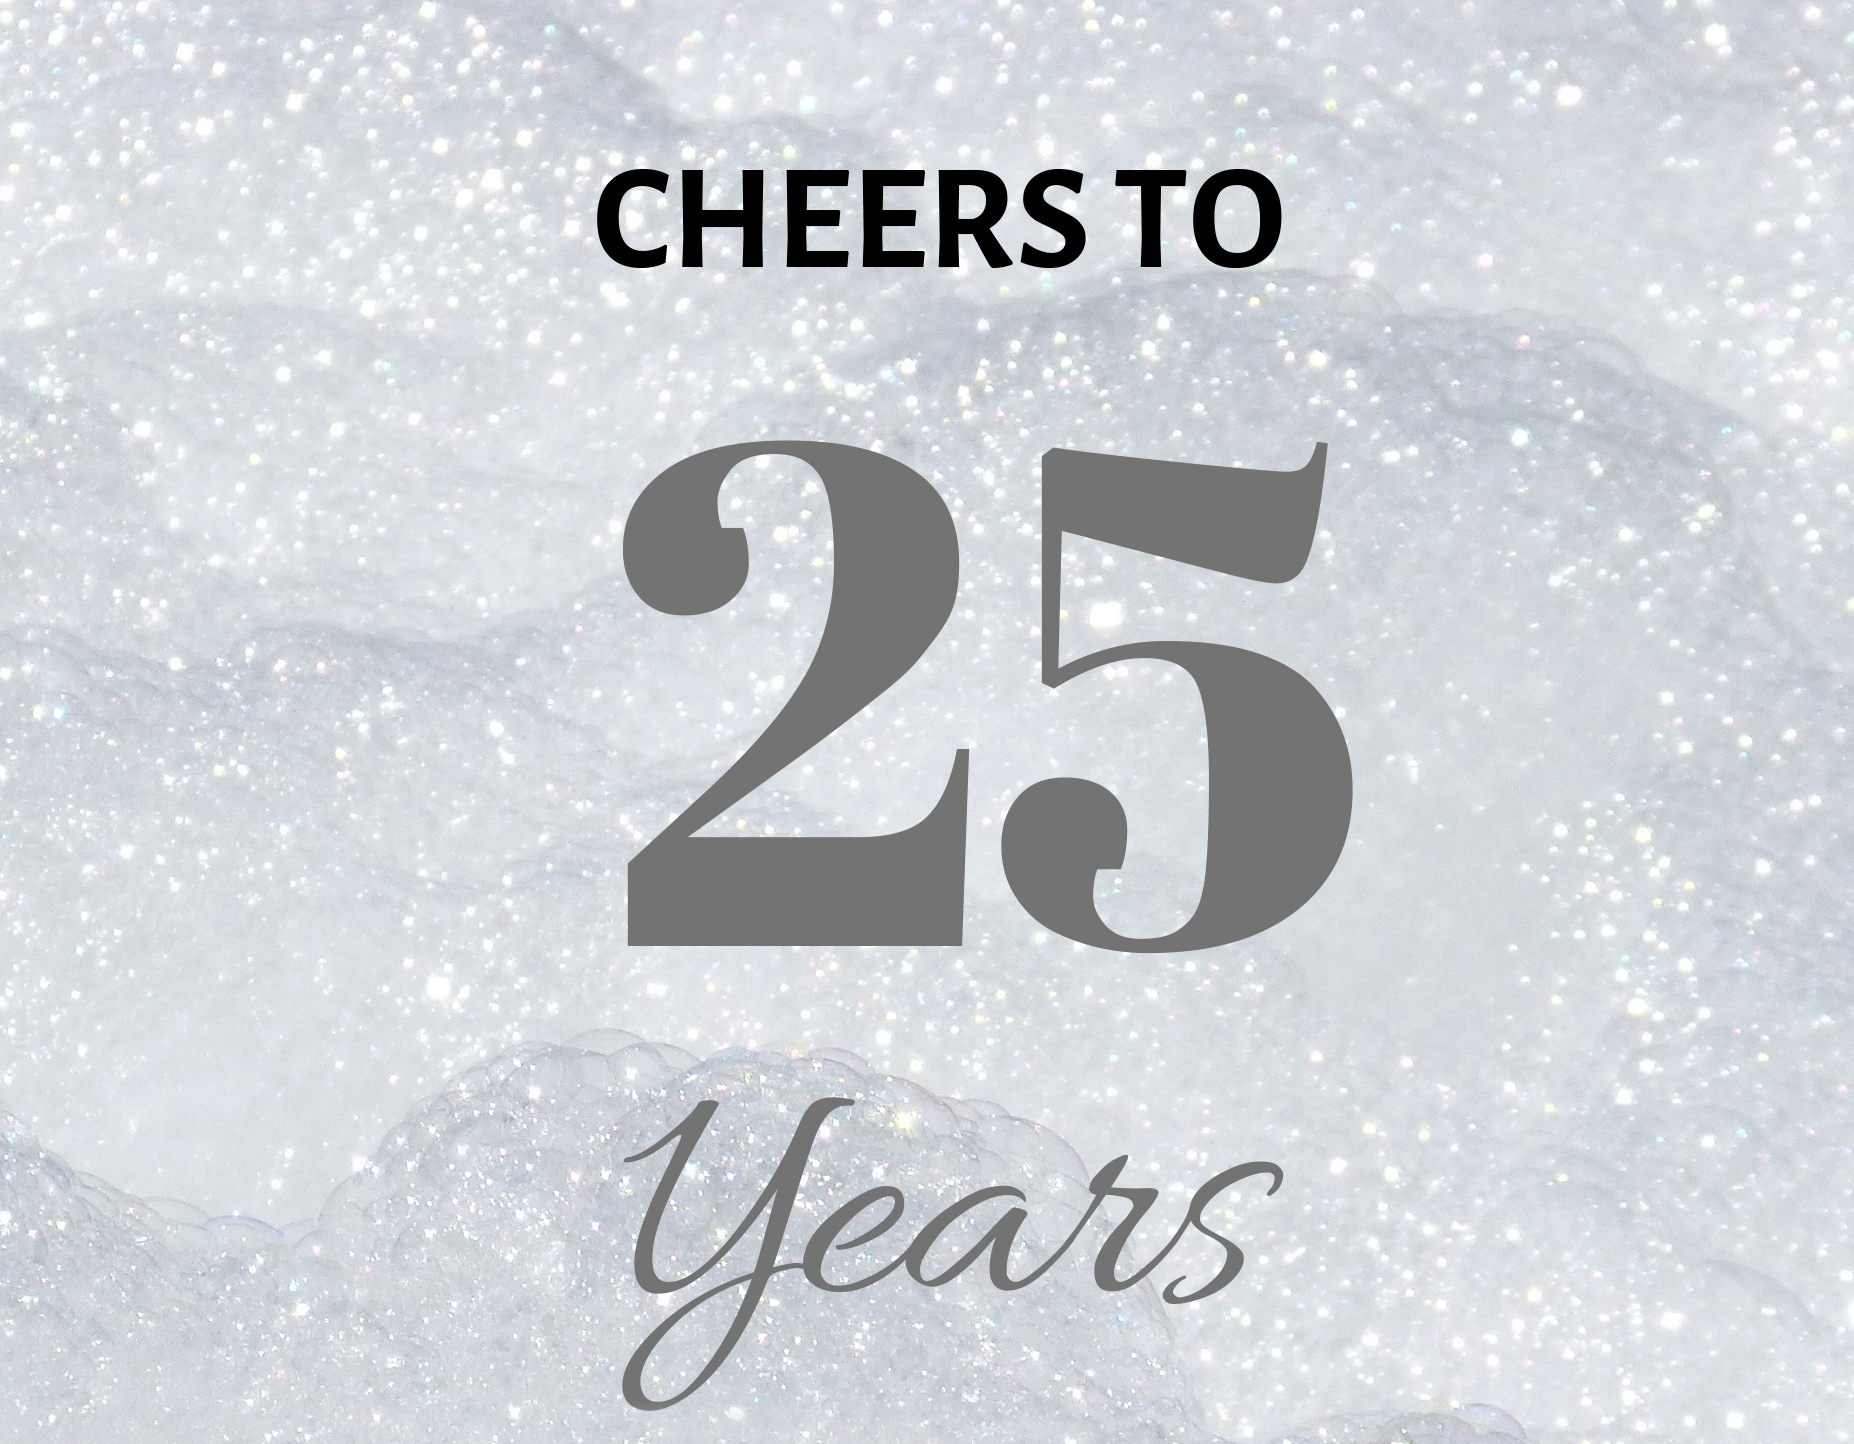 Cheers to years